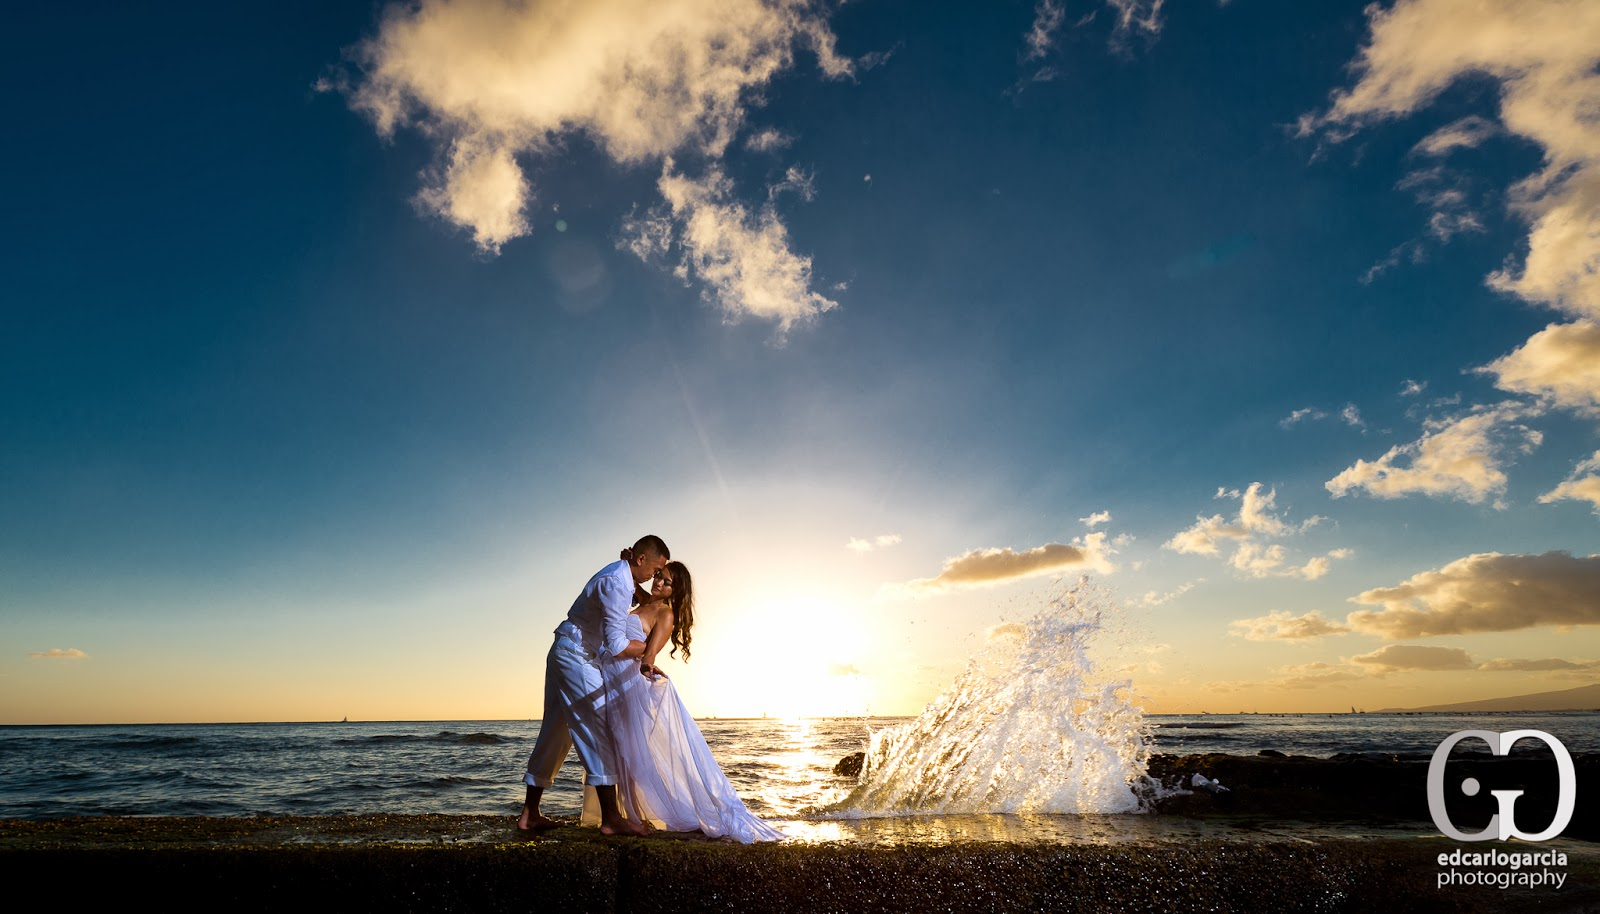 Special Wedding Photography Travel For Hawaii A Limited Time In The Oahu Honolulu Waikiki Area Was This Year S Destination